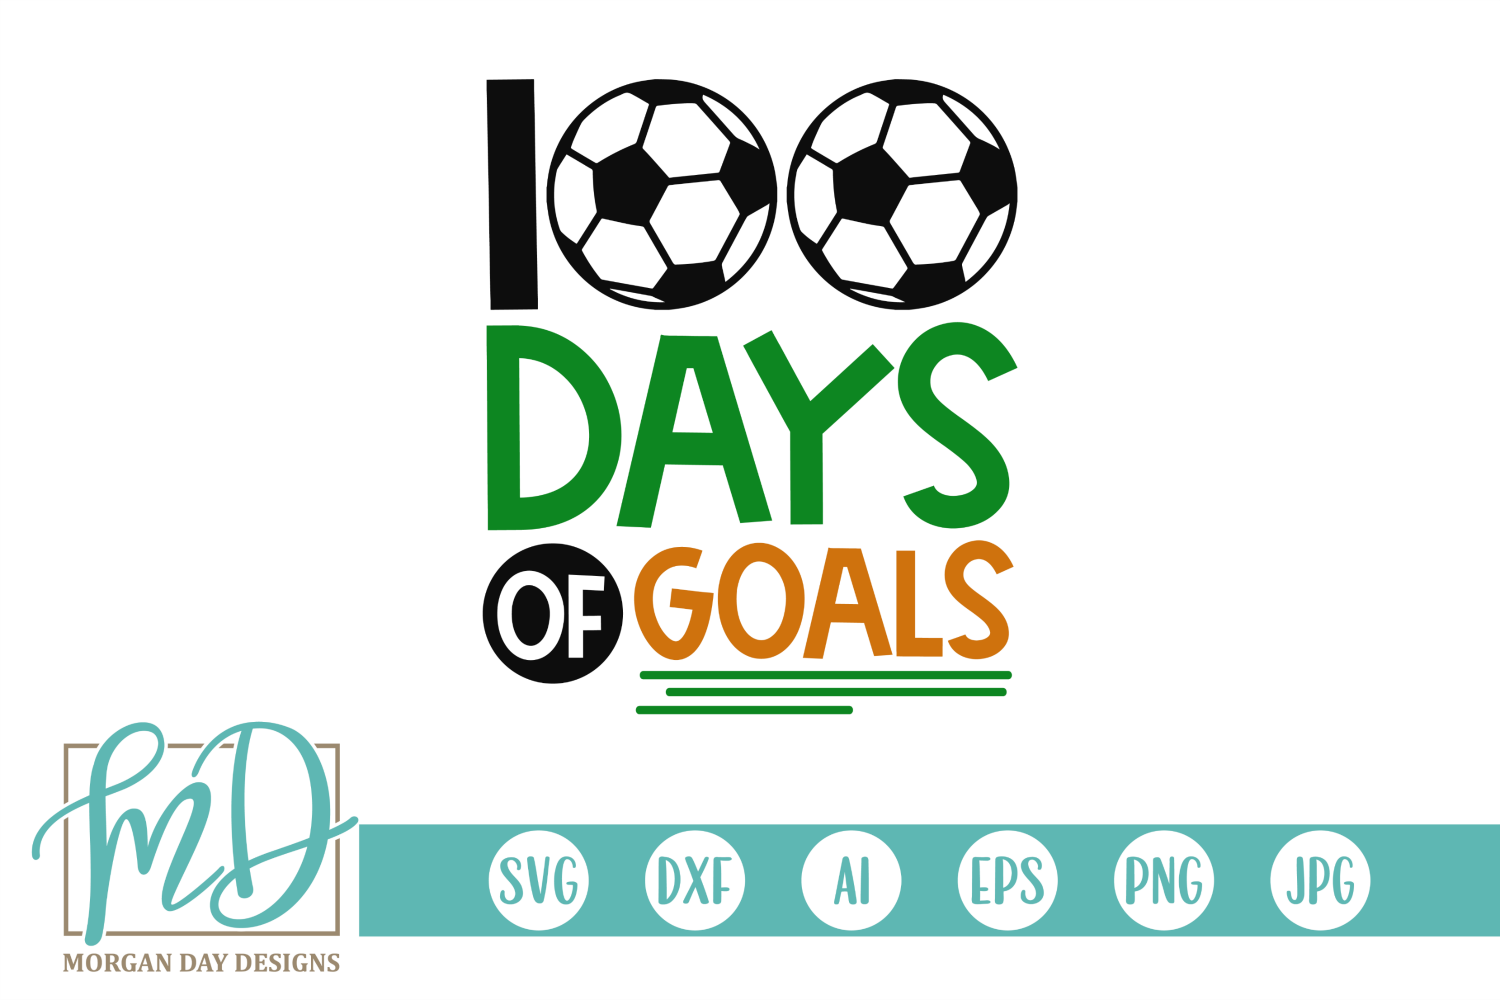 Download Free 100 Days Of Goals Soccer Graphic By Morgan Day Designs for Cricut Explore, Silhouette and other cutting machines.